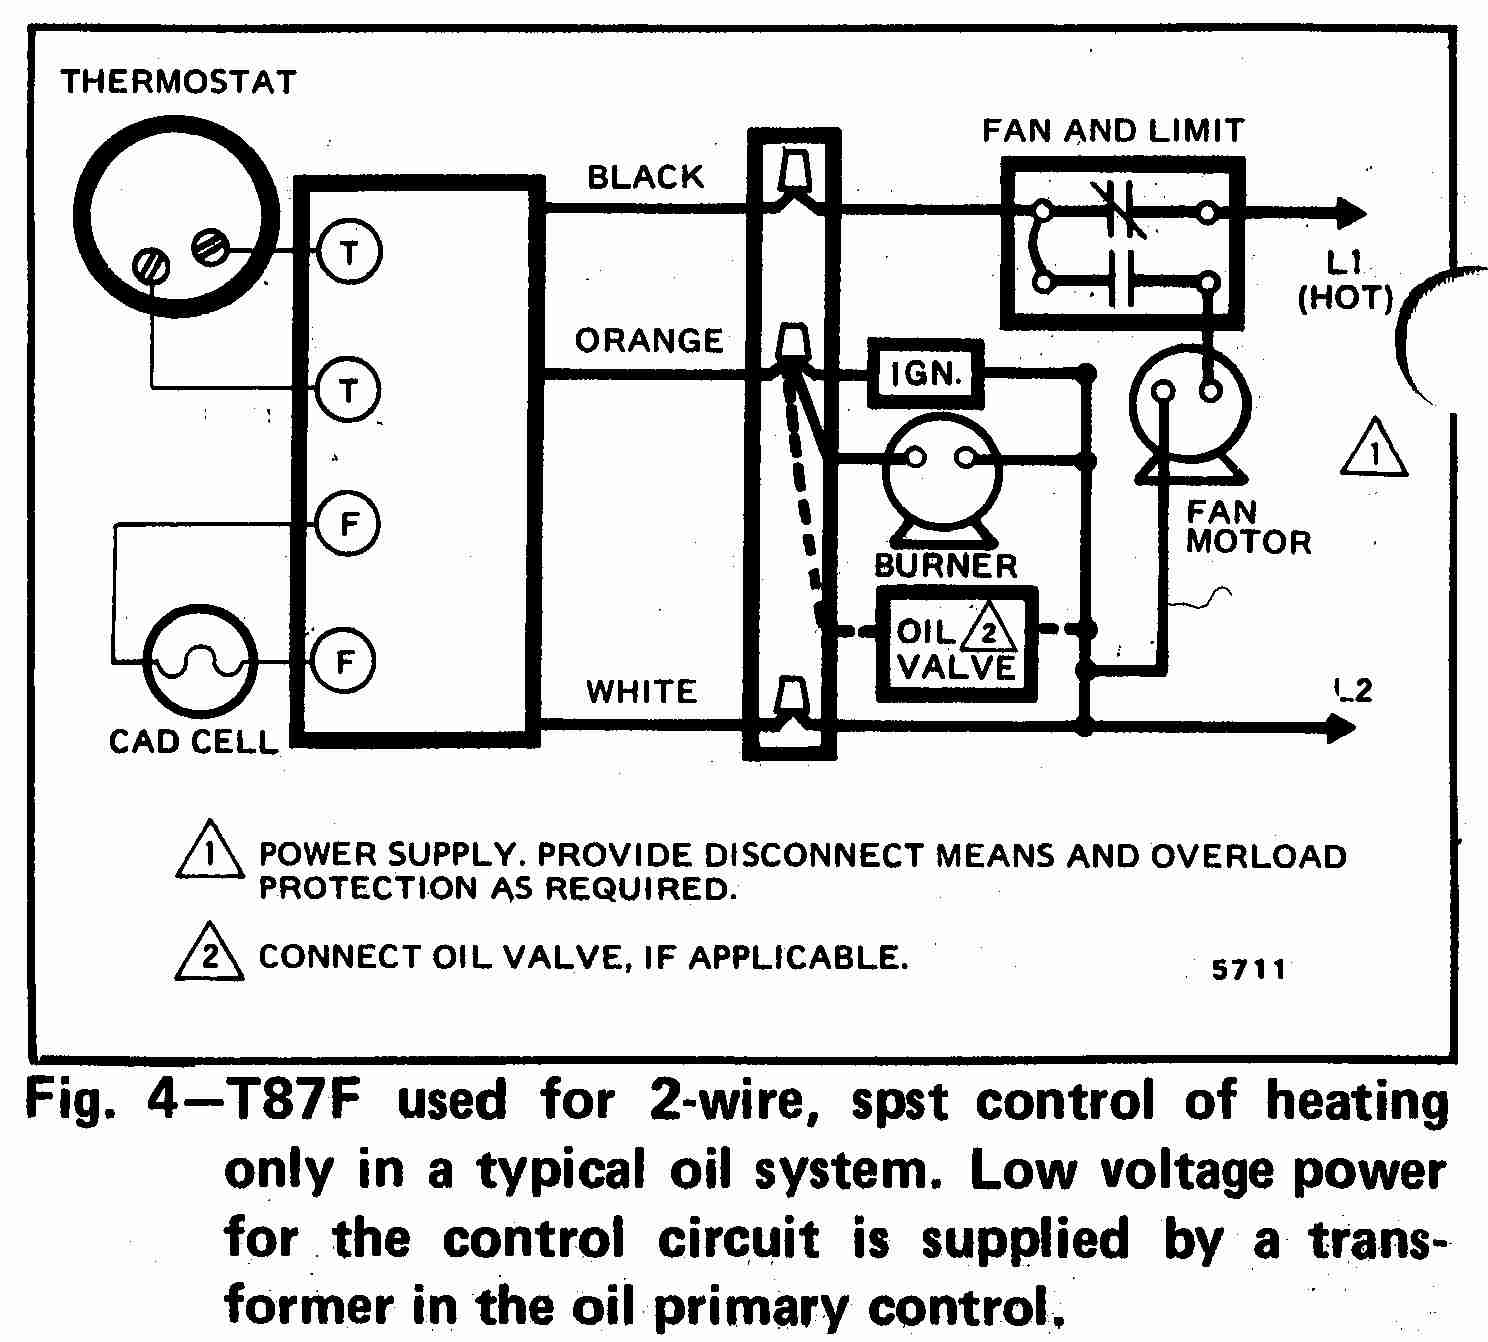 TT_T87F_0002_2W_DJF room thermostat wiring diagrams for hvac systems honeywell rth2300b wiring diagram at gsmx.co